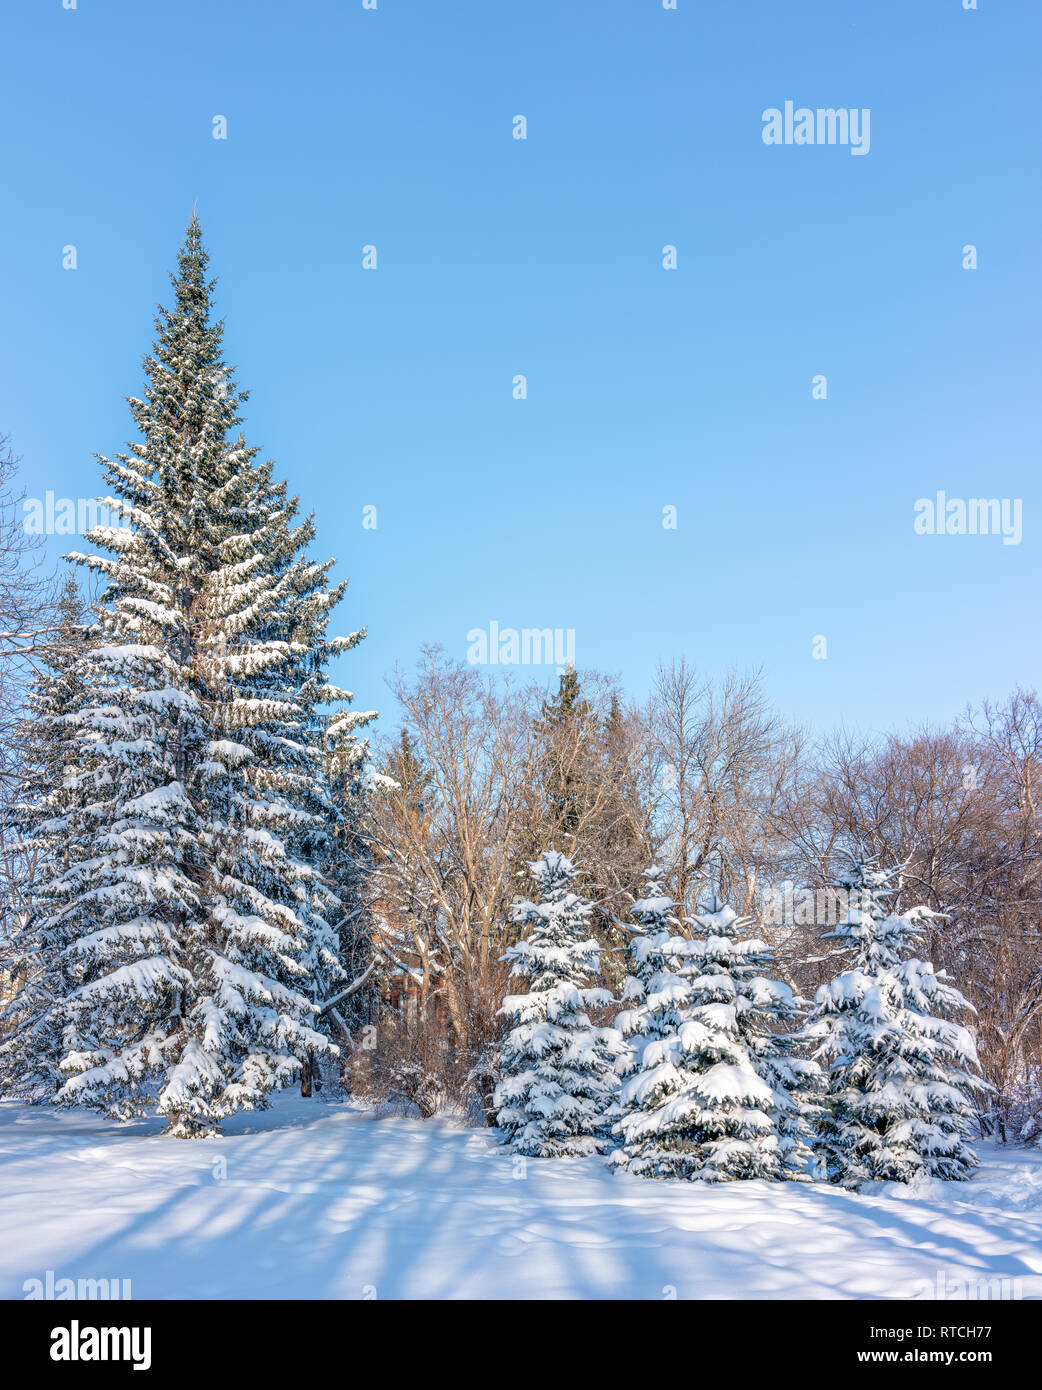 High green spruces in the winter park covered with fresh white snow. Copy space background - Stock Image